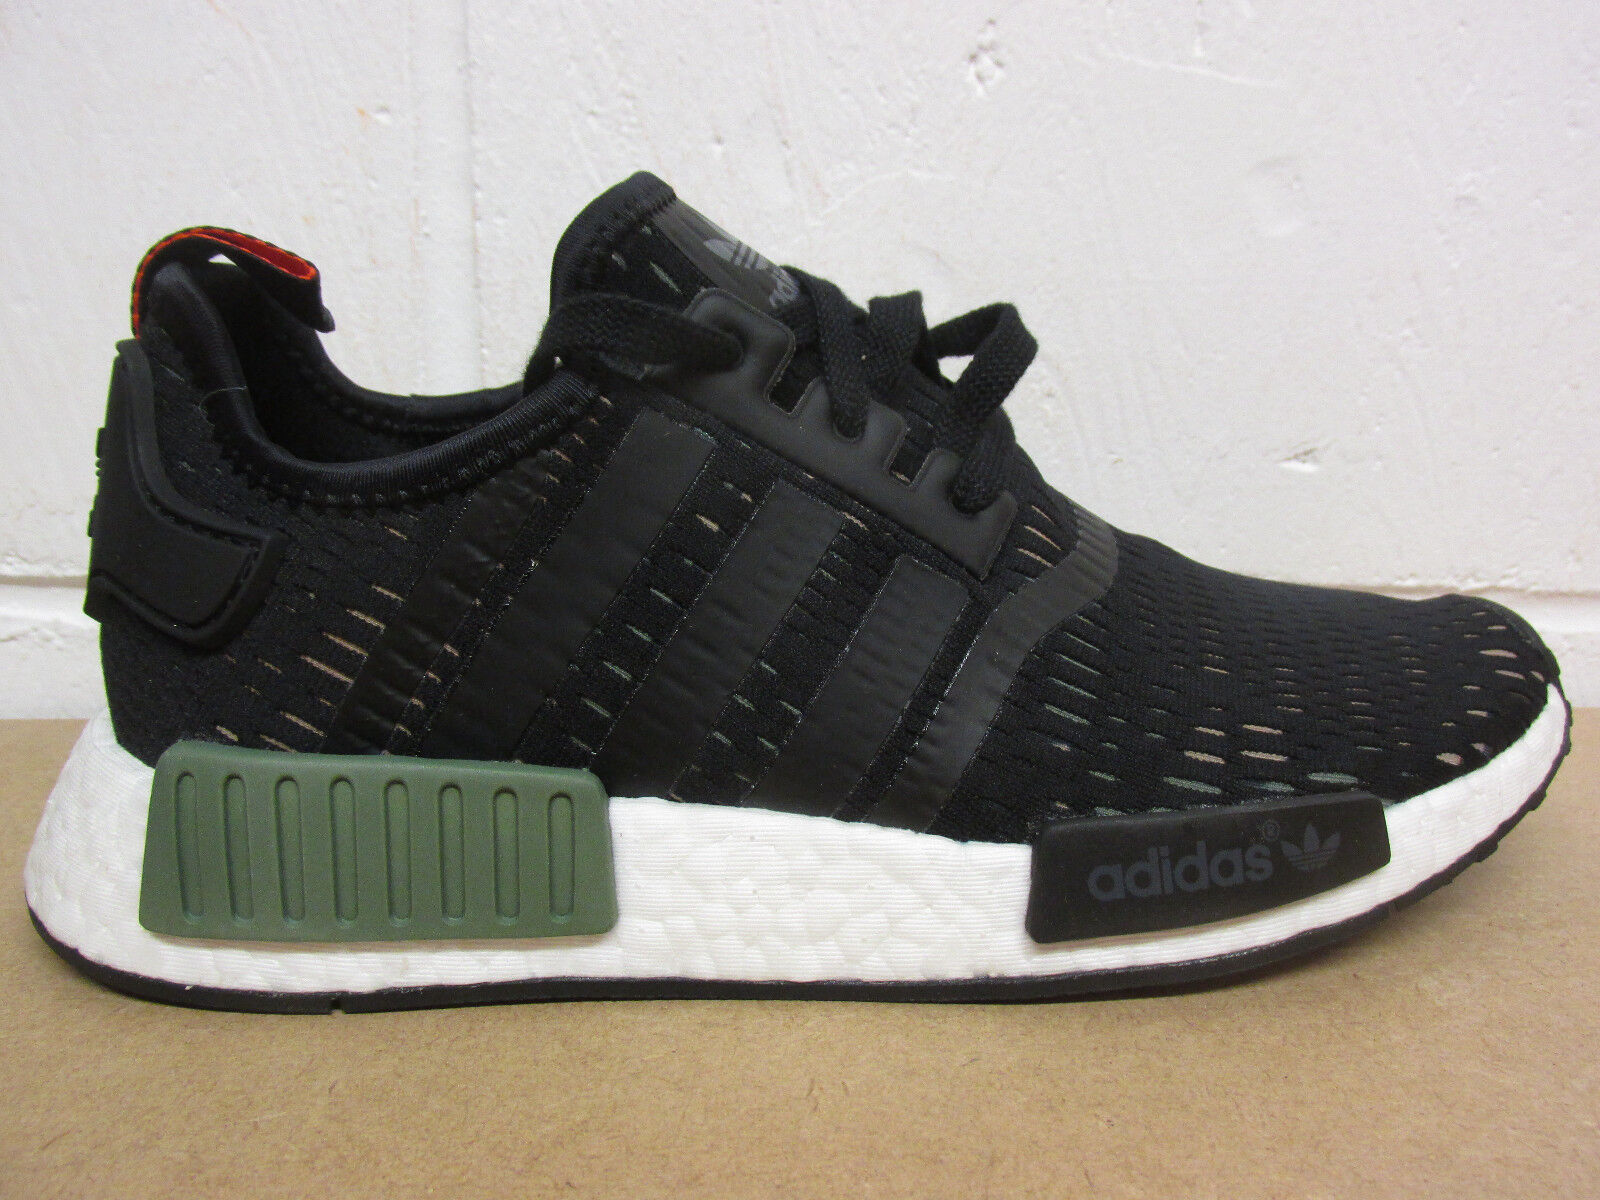 82a061f6f adidas Originals NMD R1 Mens Trainers BB1357 SNEAKERS Shoes UK 6.5 ...